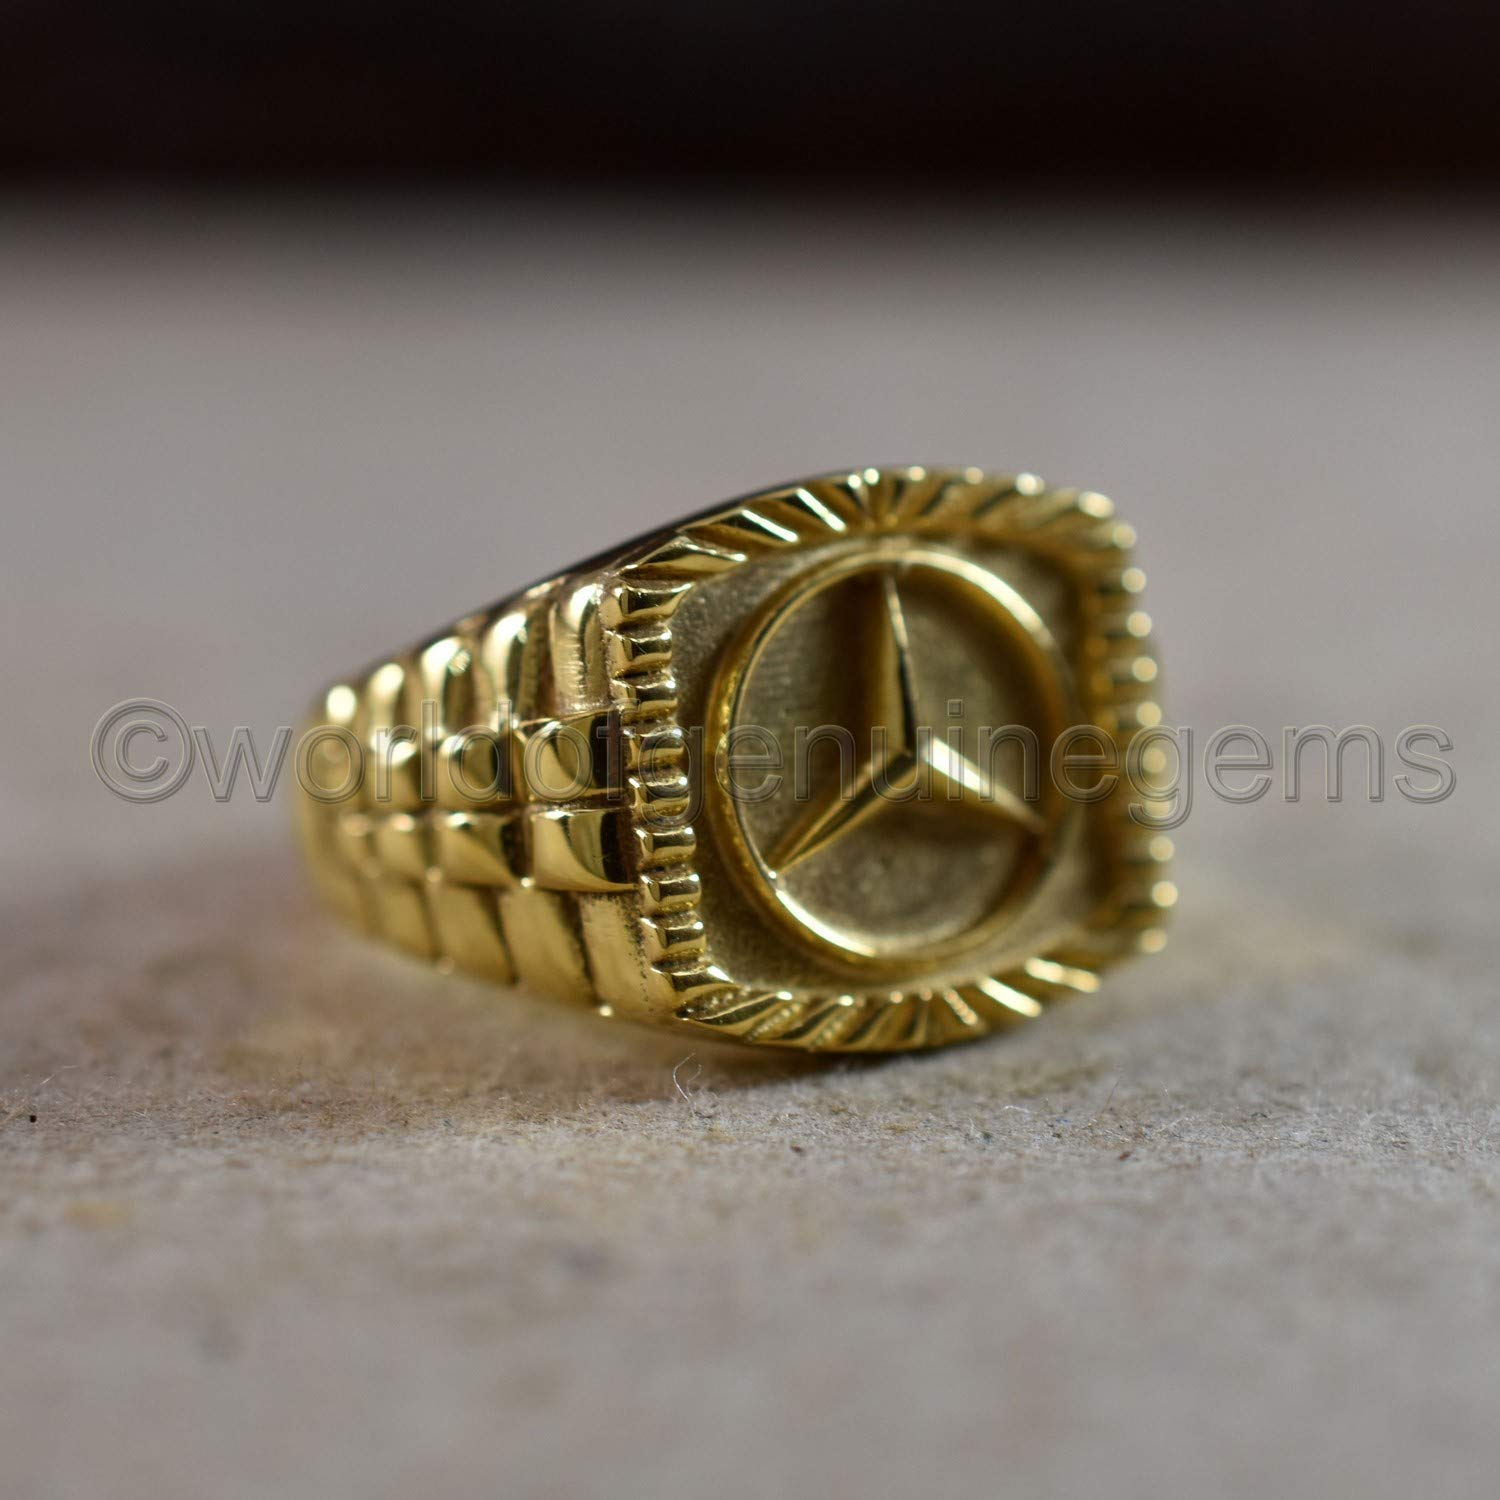 designer silver band Mercedes benz symbol ring valentine/'s day gift ring anniversary gift for him yellow gold ring 925 sterling silver father/'s day gift ring customized mercedes ring